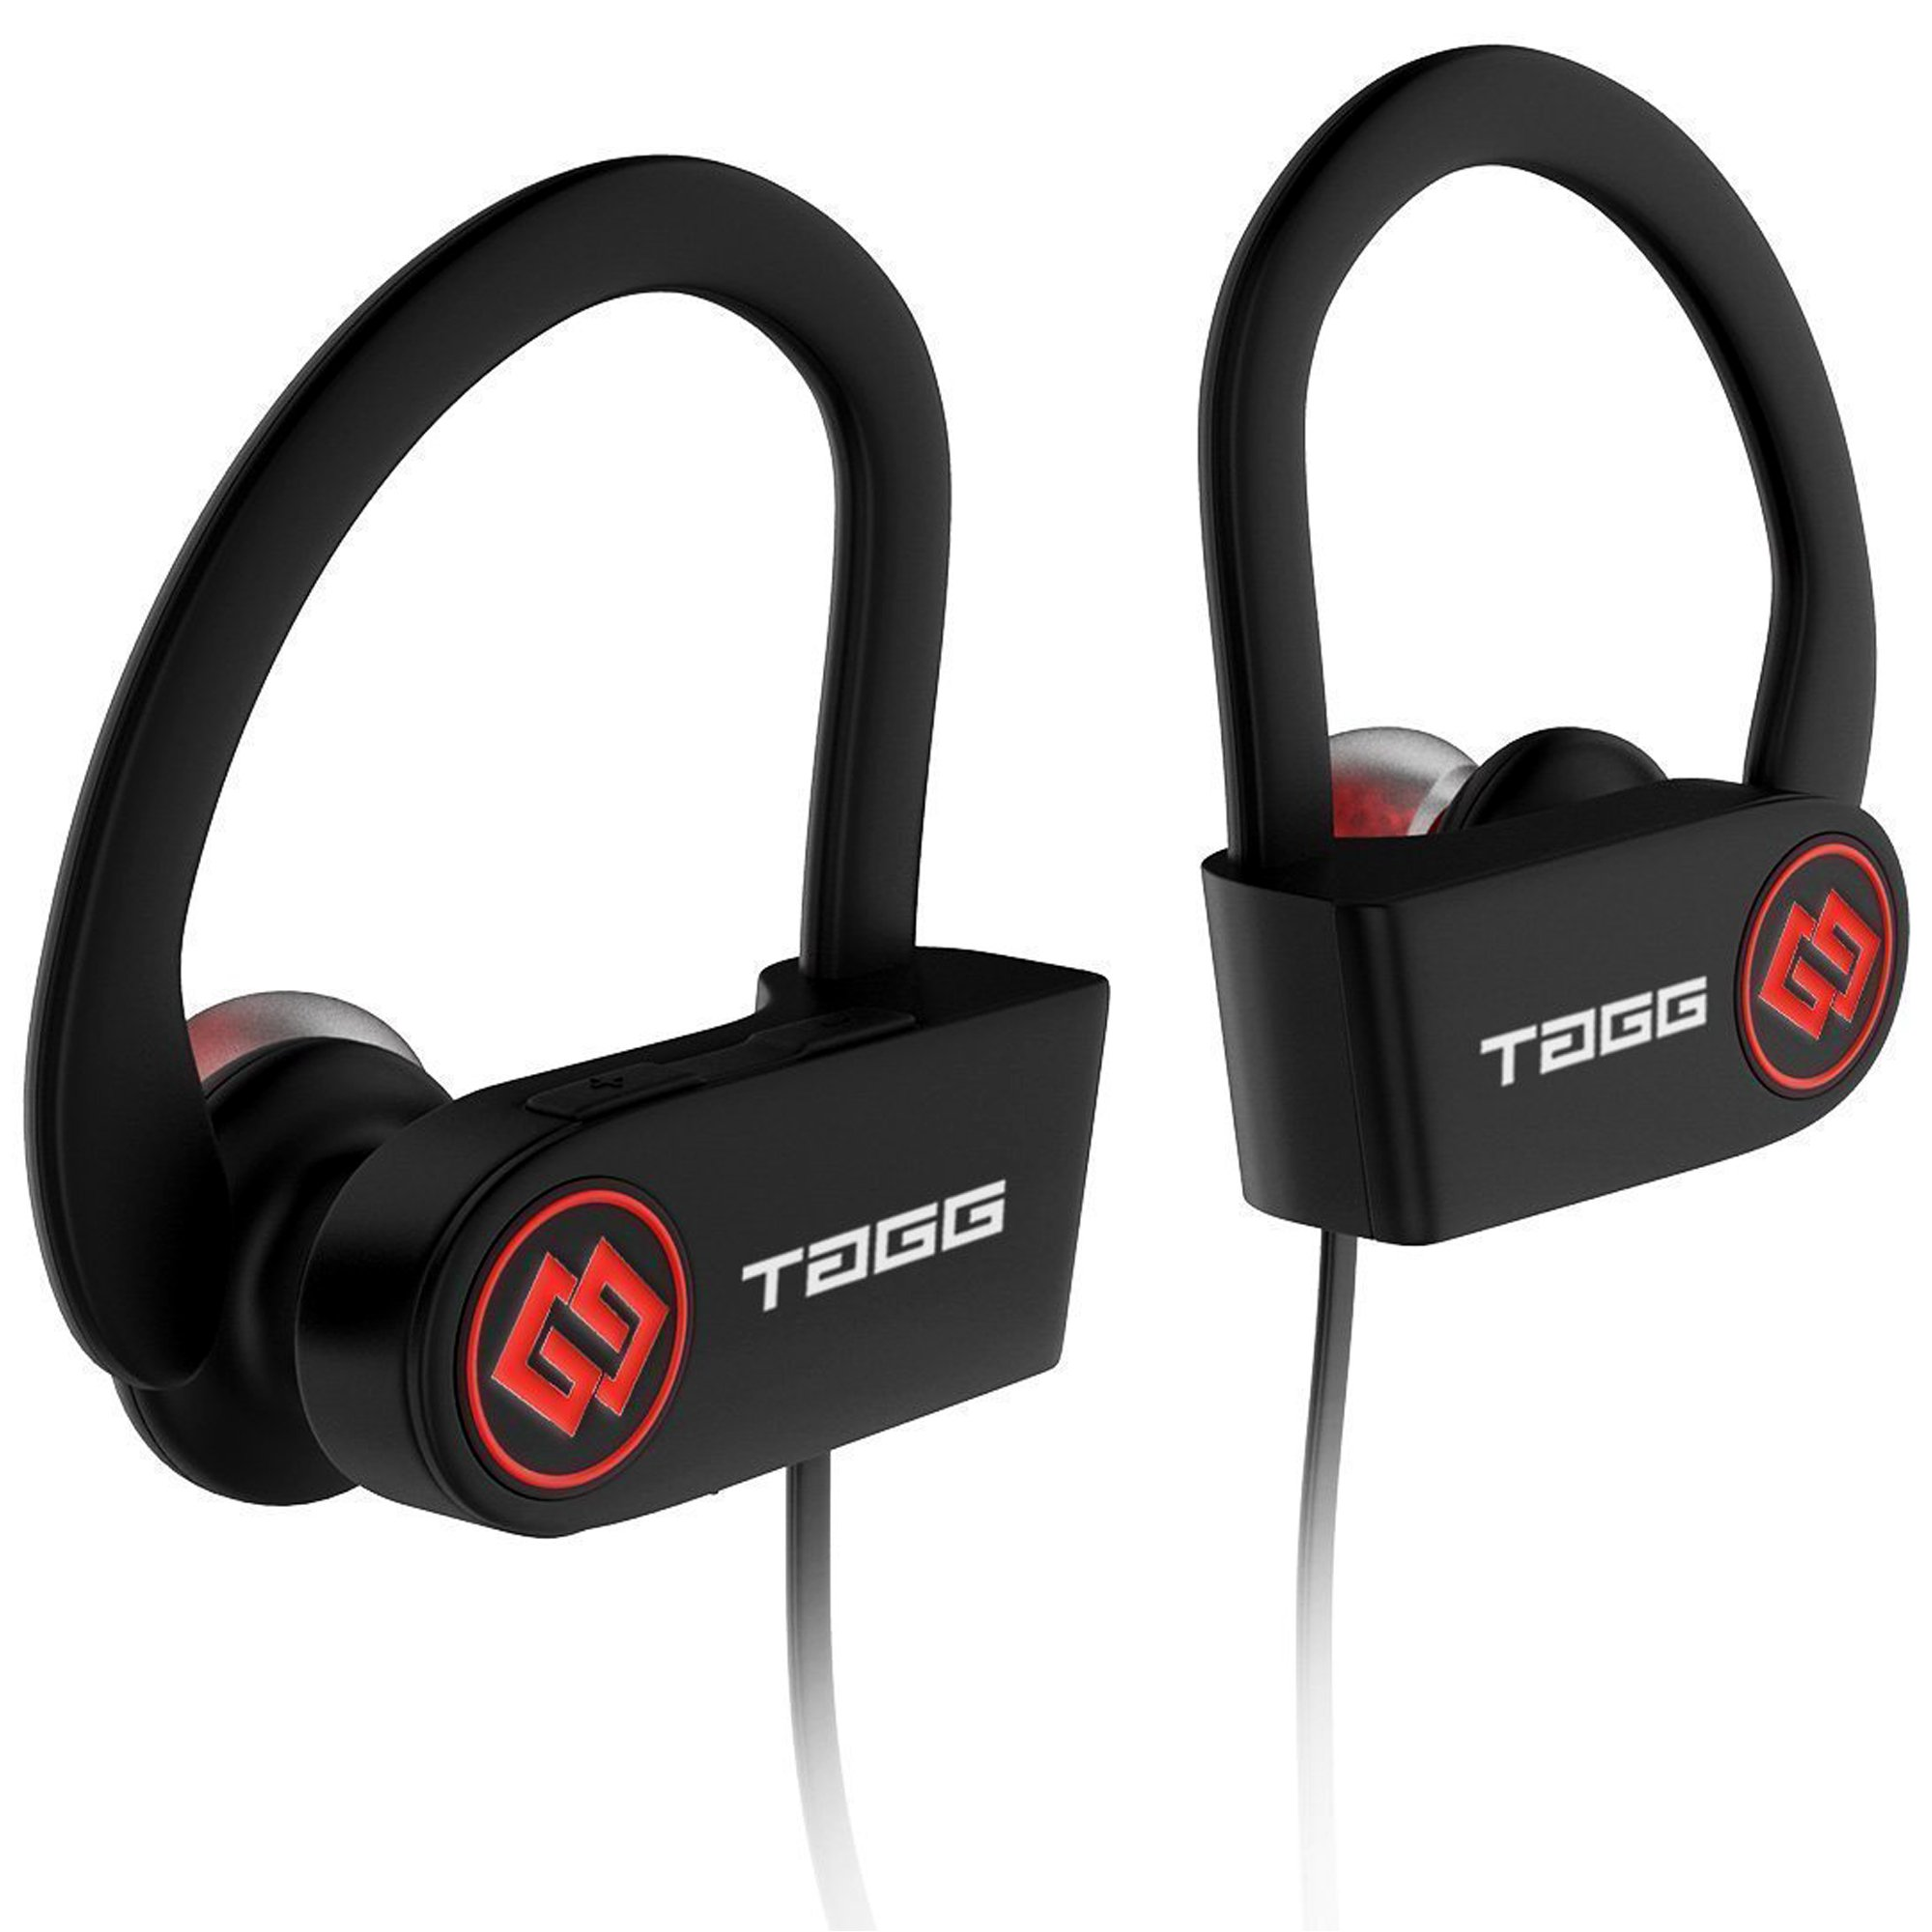 c0843c7a74d Tagg Inferno, Wireless Bluetooth Earphone With Mic + Carry Case (Black)  product image